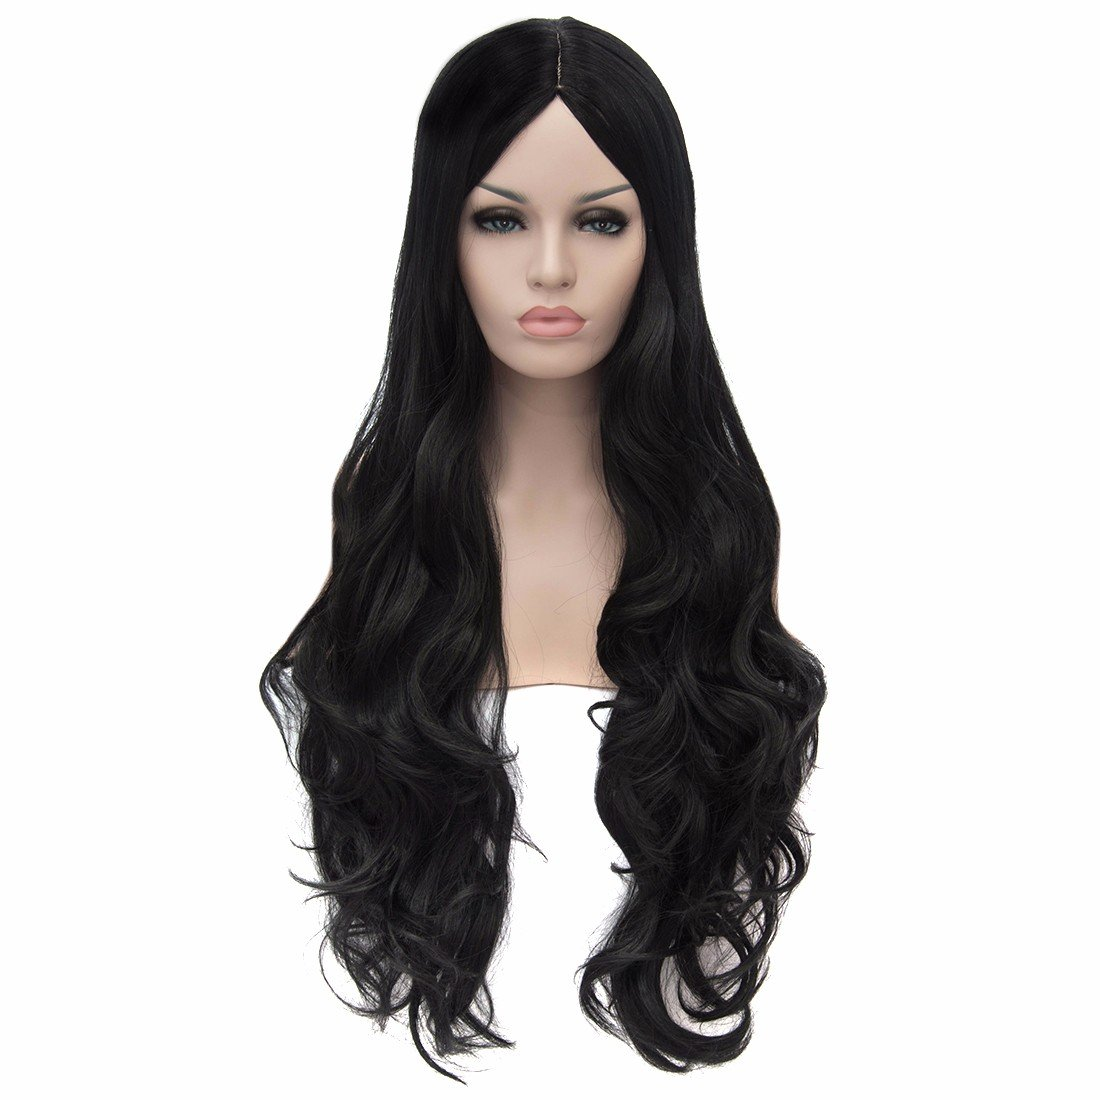 Women Black Long Wavy No Bangs Full Synthetic Hair Wigs Cosplay Party Anime Wig